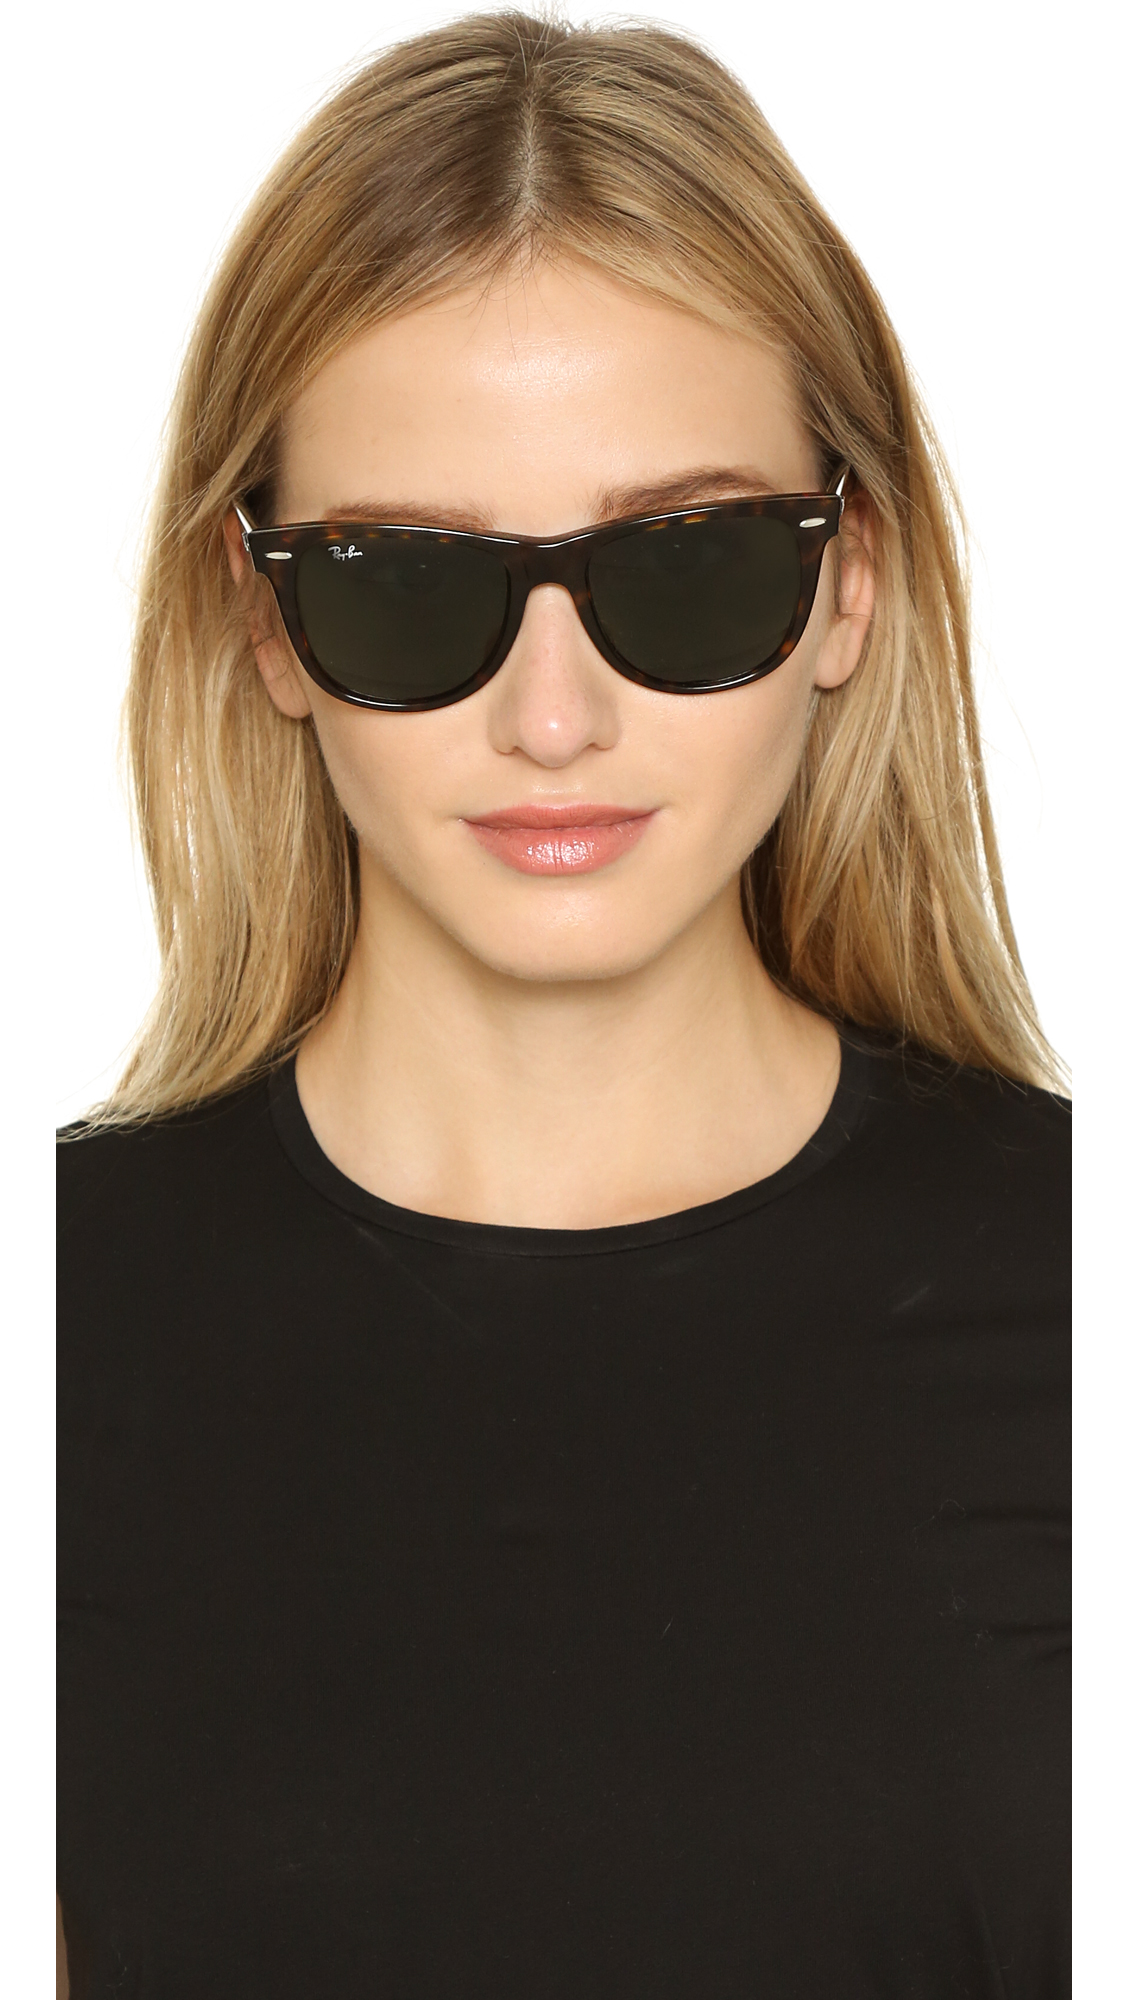 Ray-Ban Outsiders Oversized Wayfarer Sunglasses | SHOPBOP SAVE UP TO 30%  Use Code: MORE17